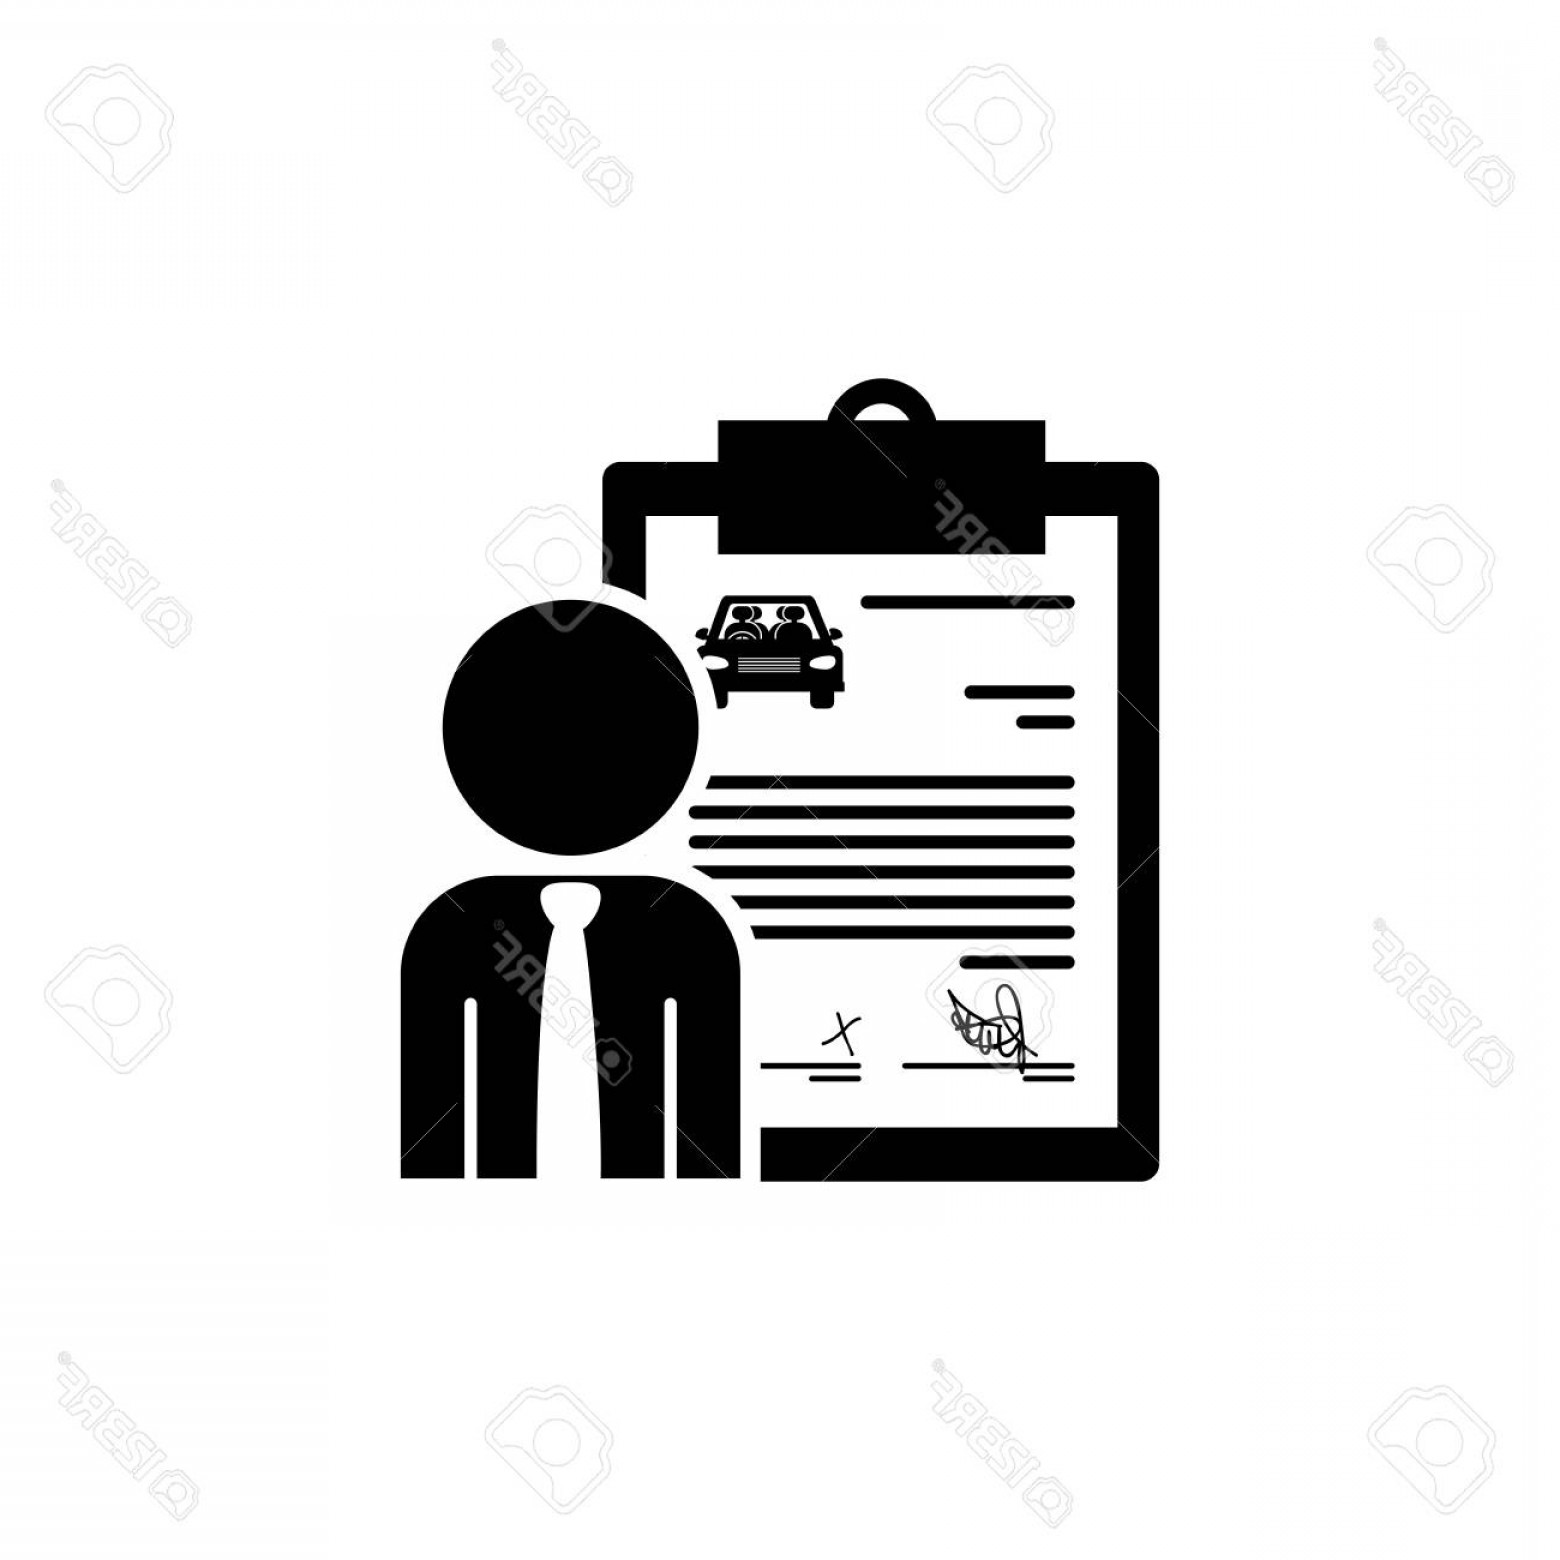 Salesman Vector: Photostock Vector Black Silhouette Car Contract And Salesman Vector Illustration